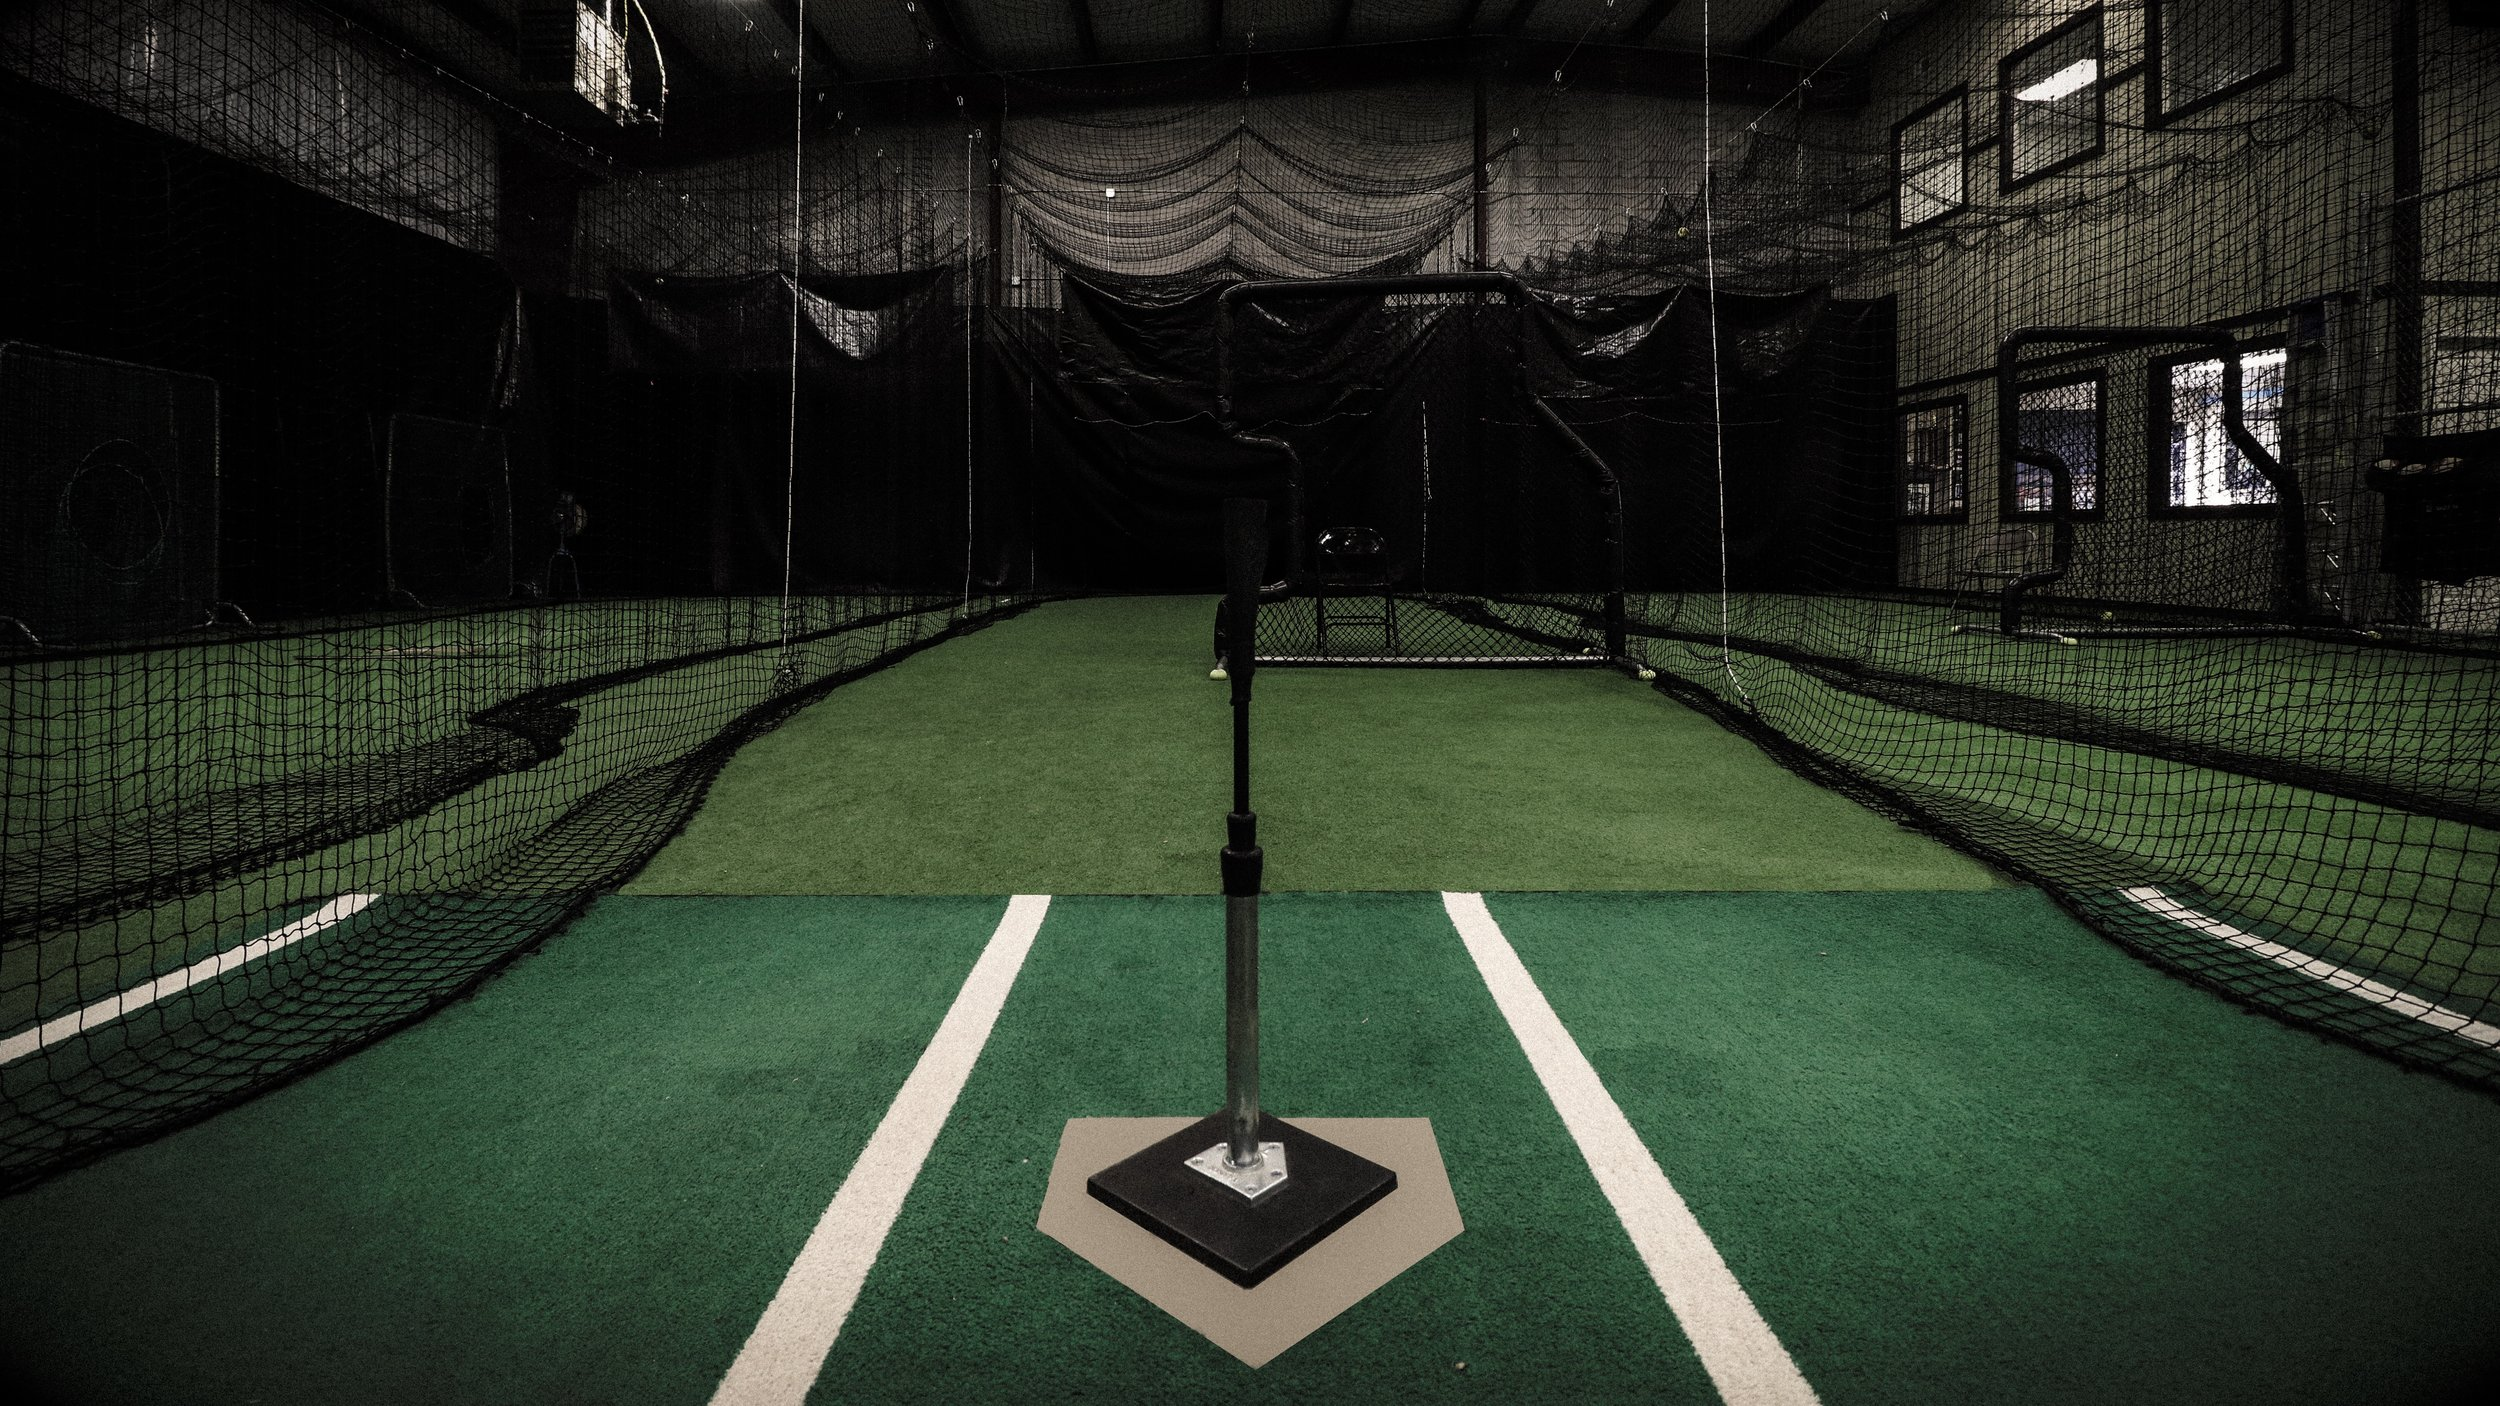 45'-55' Hitting Cages